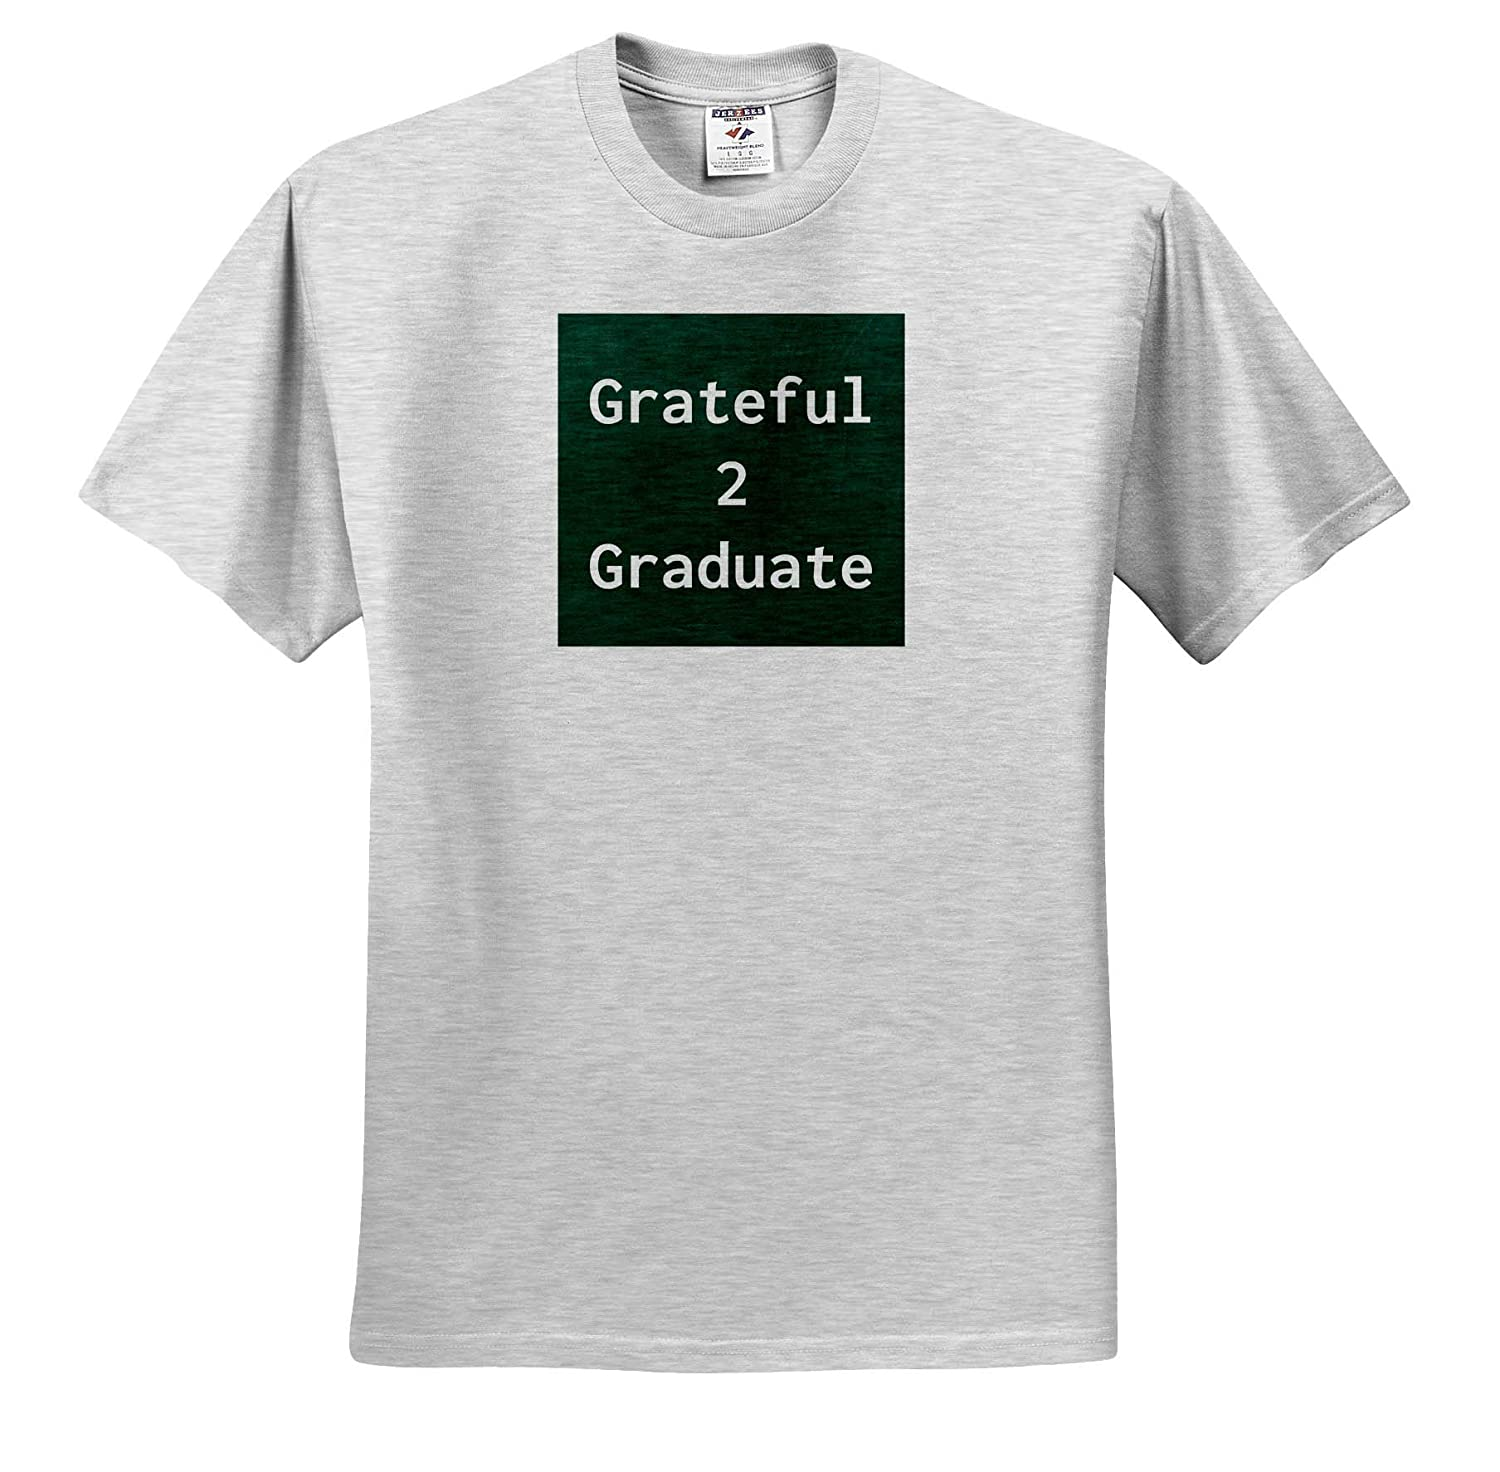 3dRose Carrie Merchant Image ts/_309564 Adult T-Shirt XL Image of Grateful to Graduate